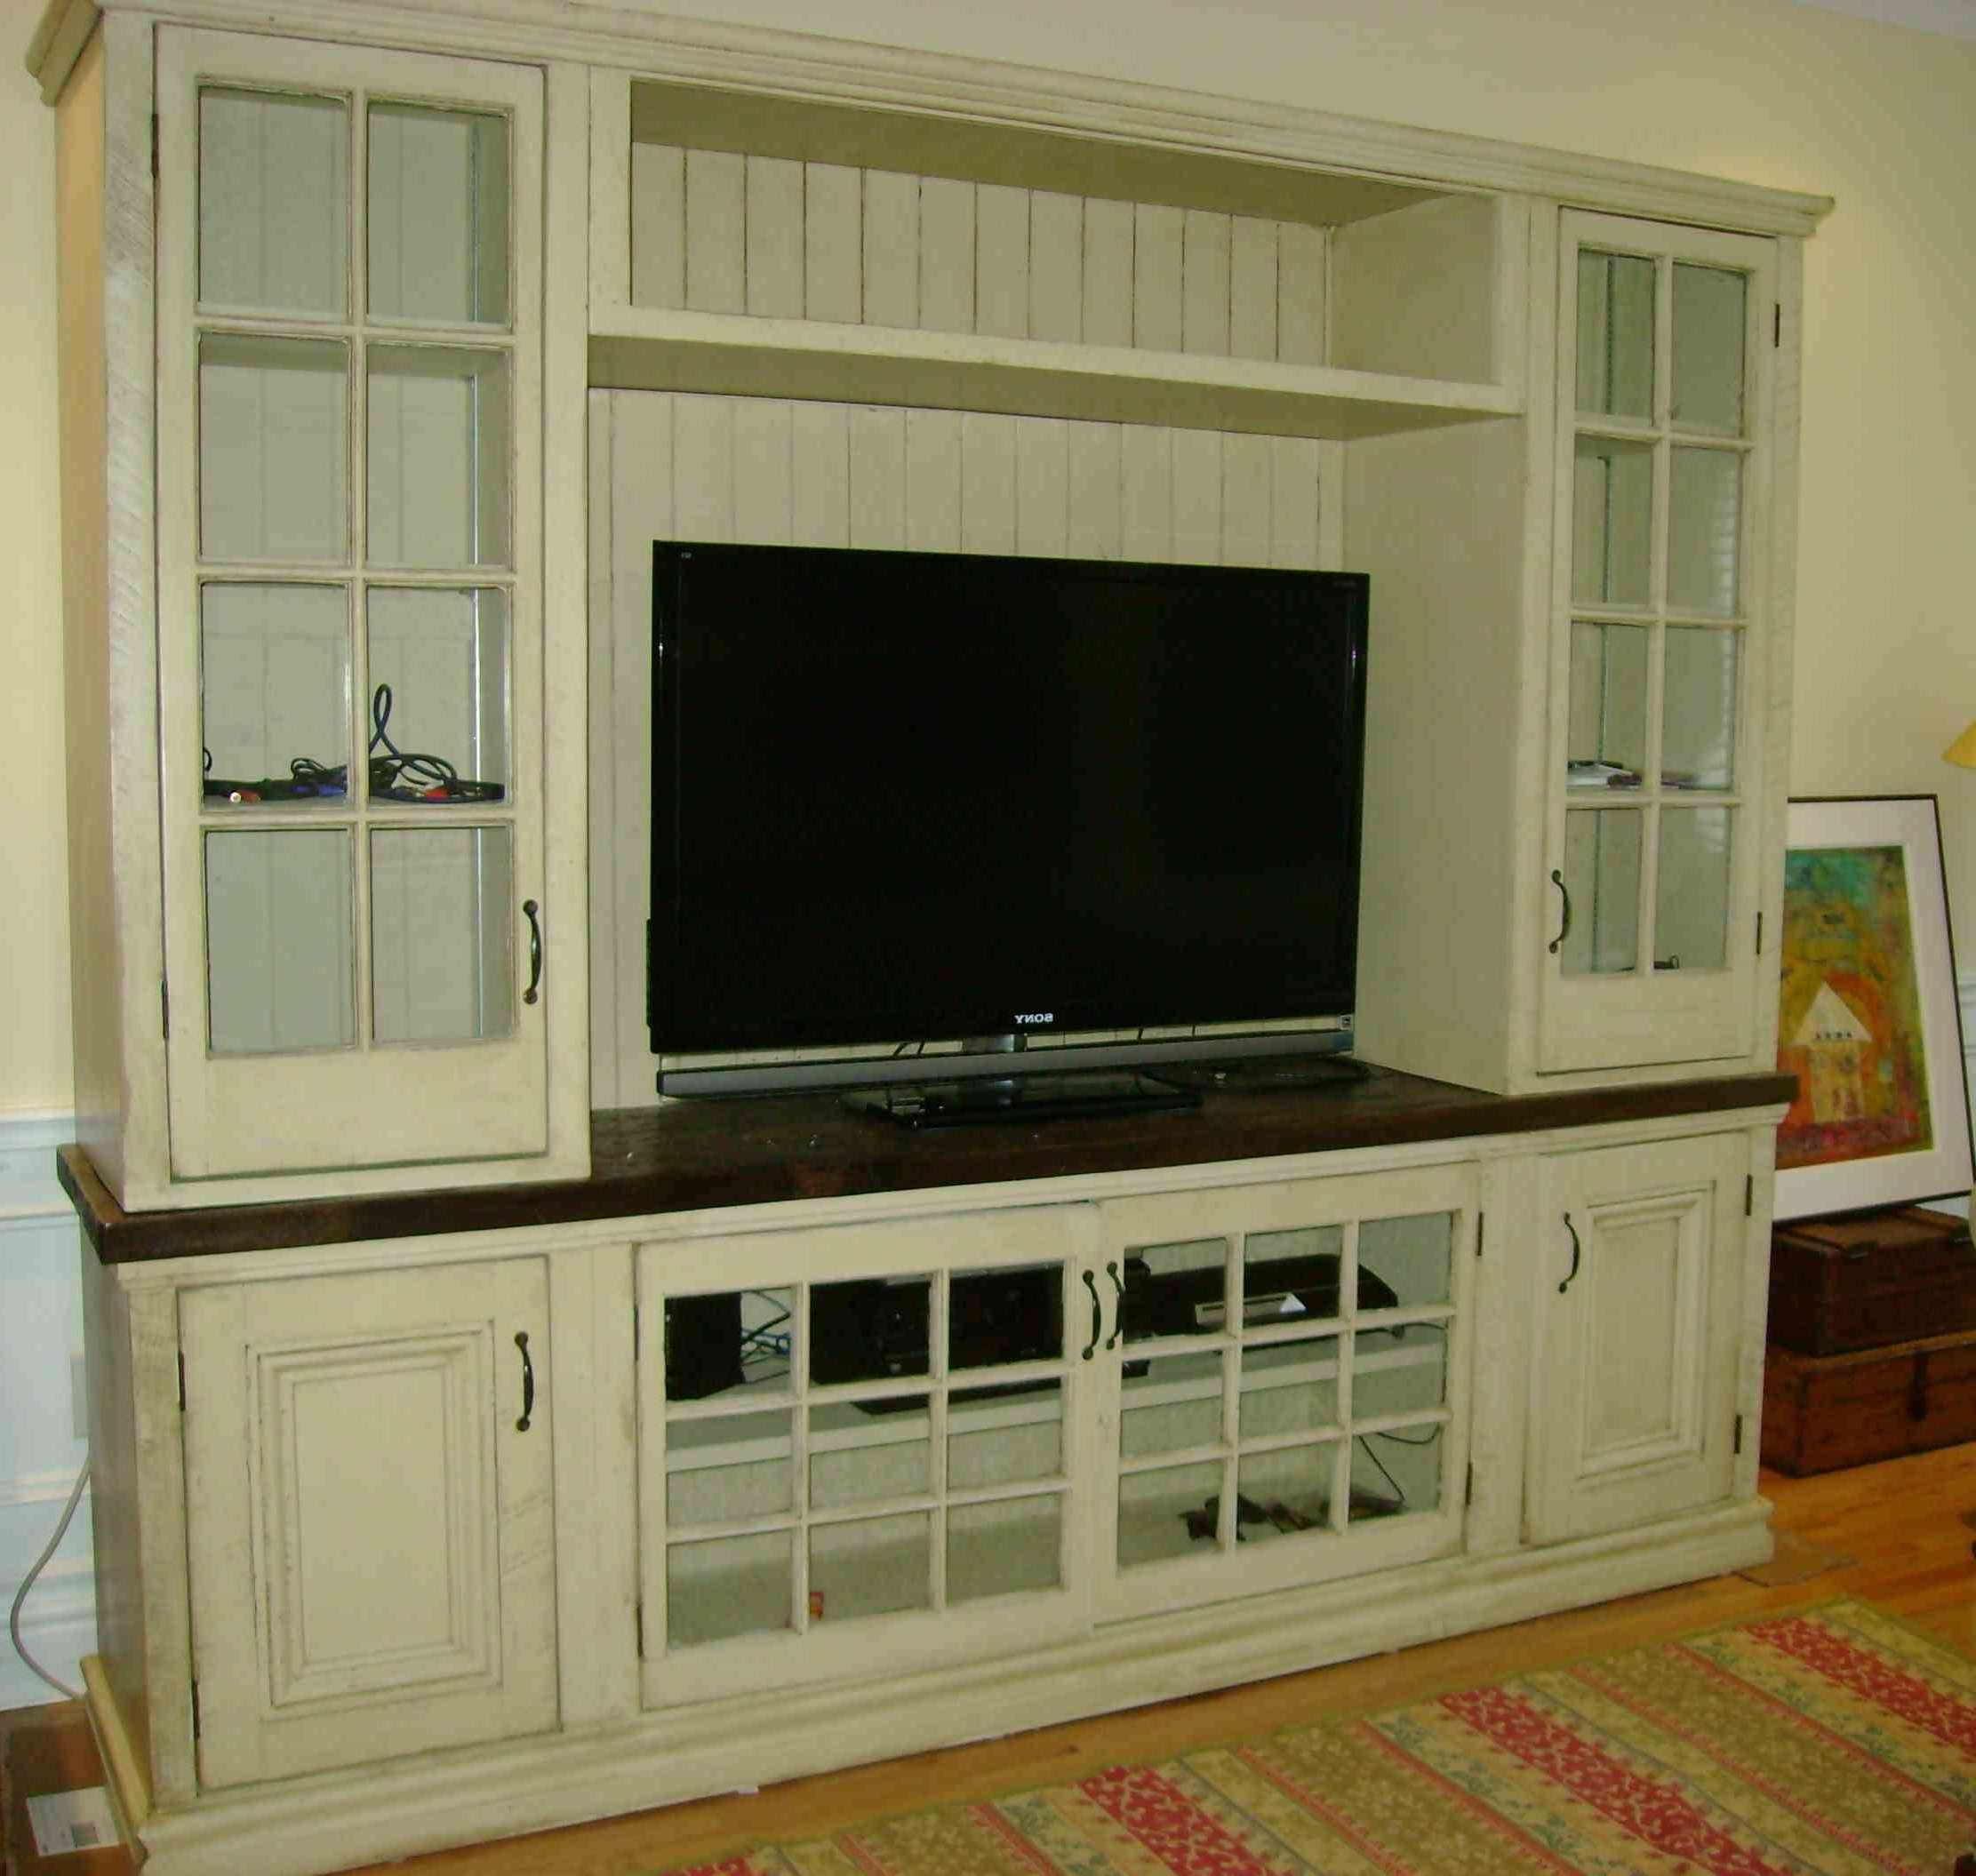 Living Room : Beautiful White Wood Glass Modern Design Elegant Intended For Wall Display Units And Tv Cabinets (View 17 of 20)